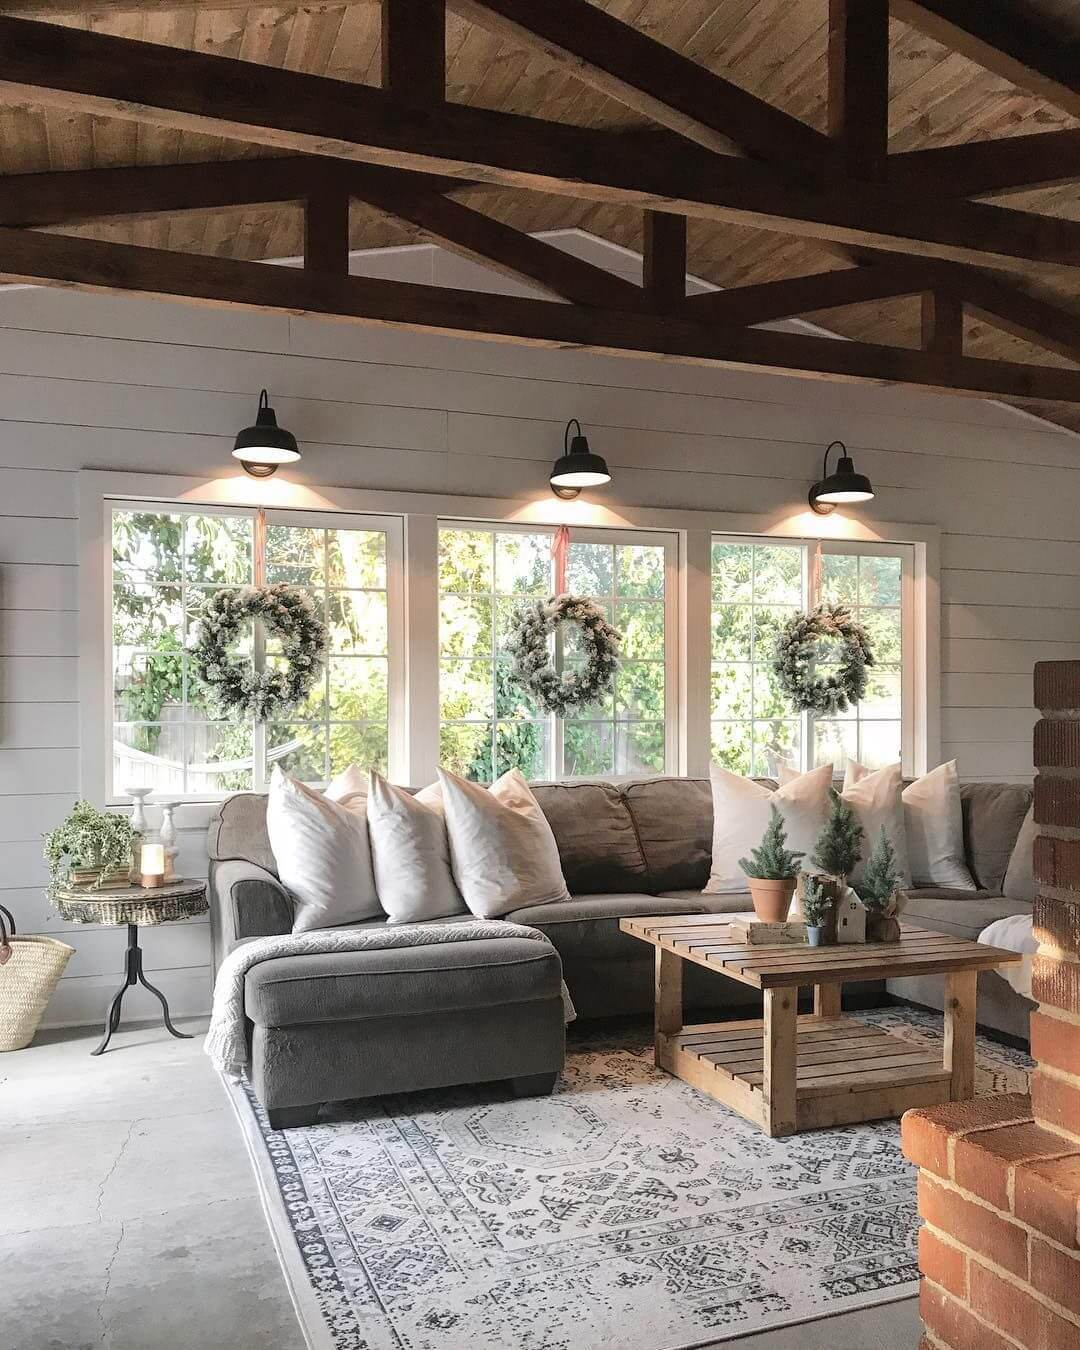 35 Best Farmhouse Interior Ideas And Designs For 2019